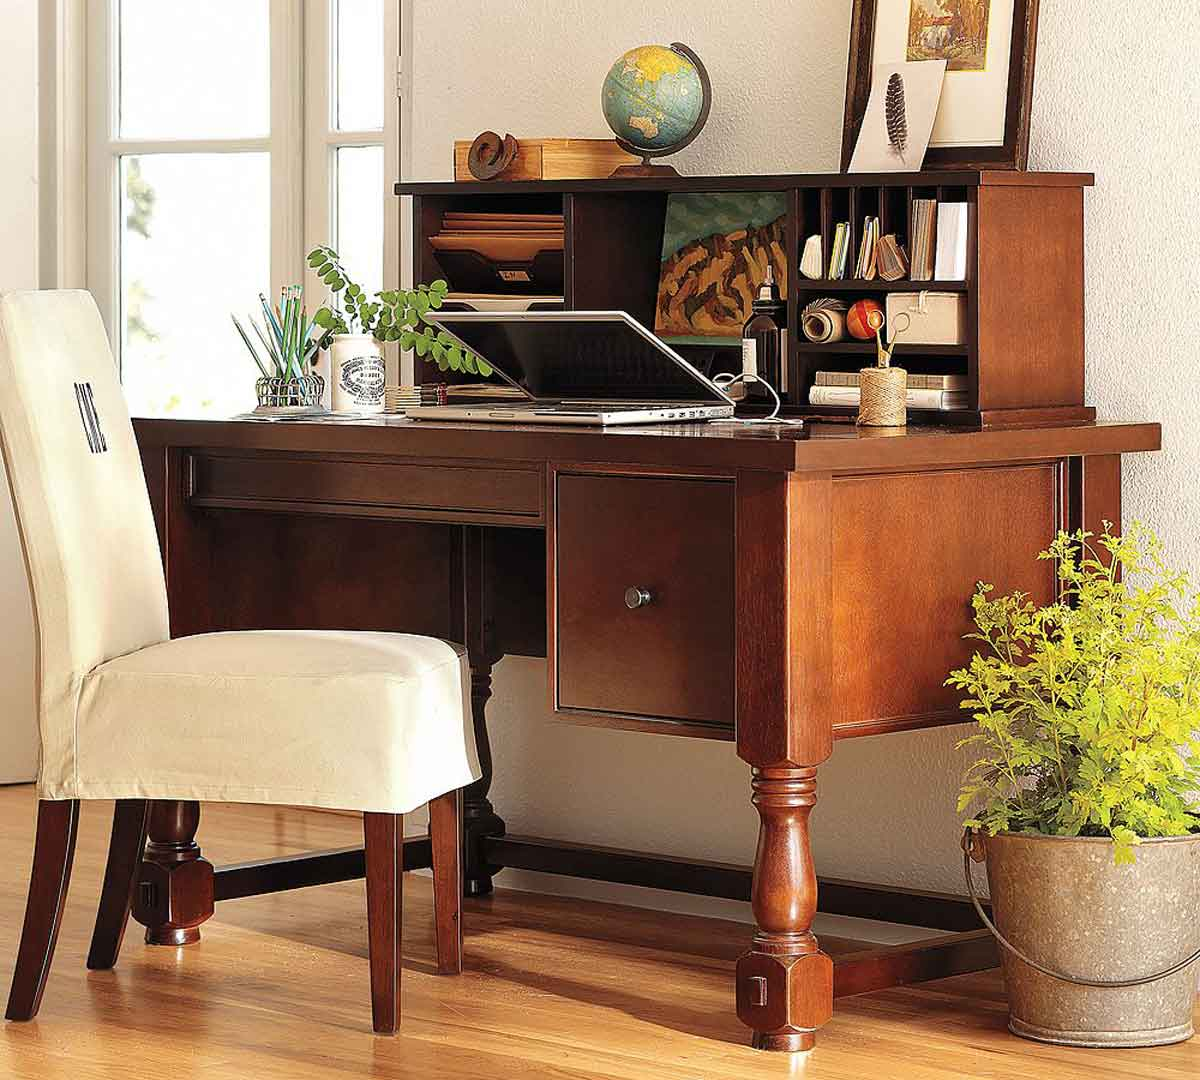 interior-office-workspace-comfortable-vintage-home-office-furniture-home-office-designs-and-layouts-ideas